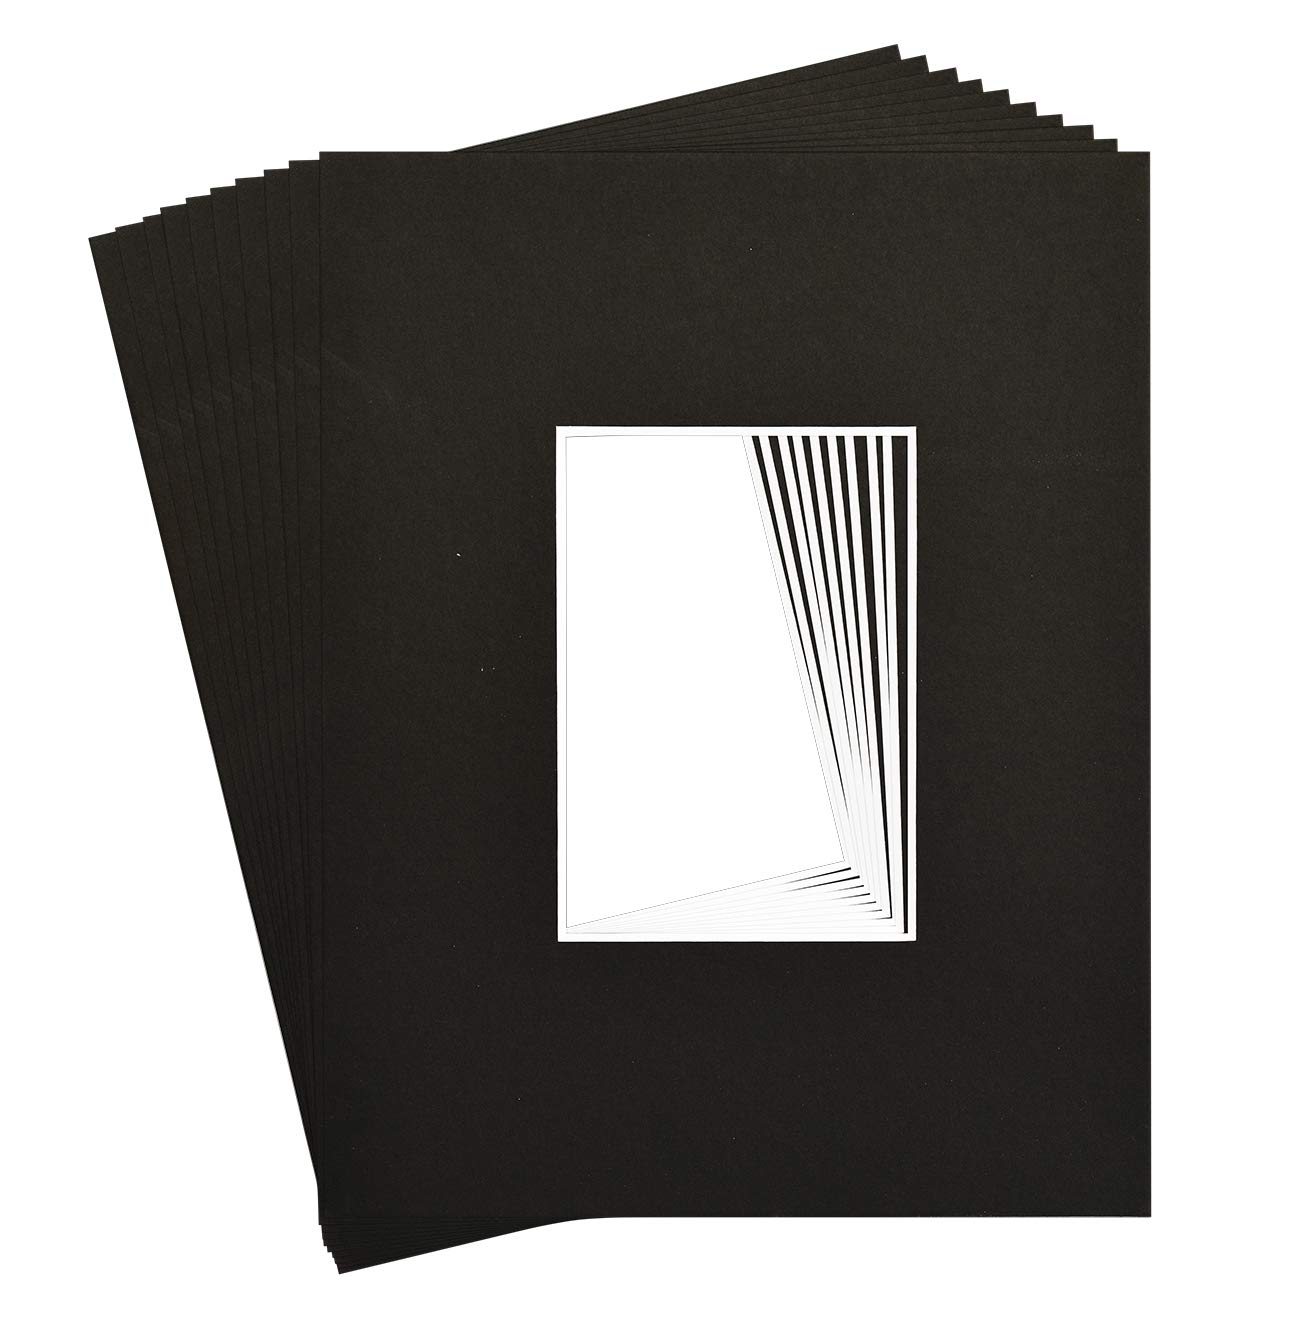 10 11x14 8-ply mat mattes BLACK for 5x7 Photo picture by Golden State Art